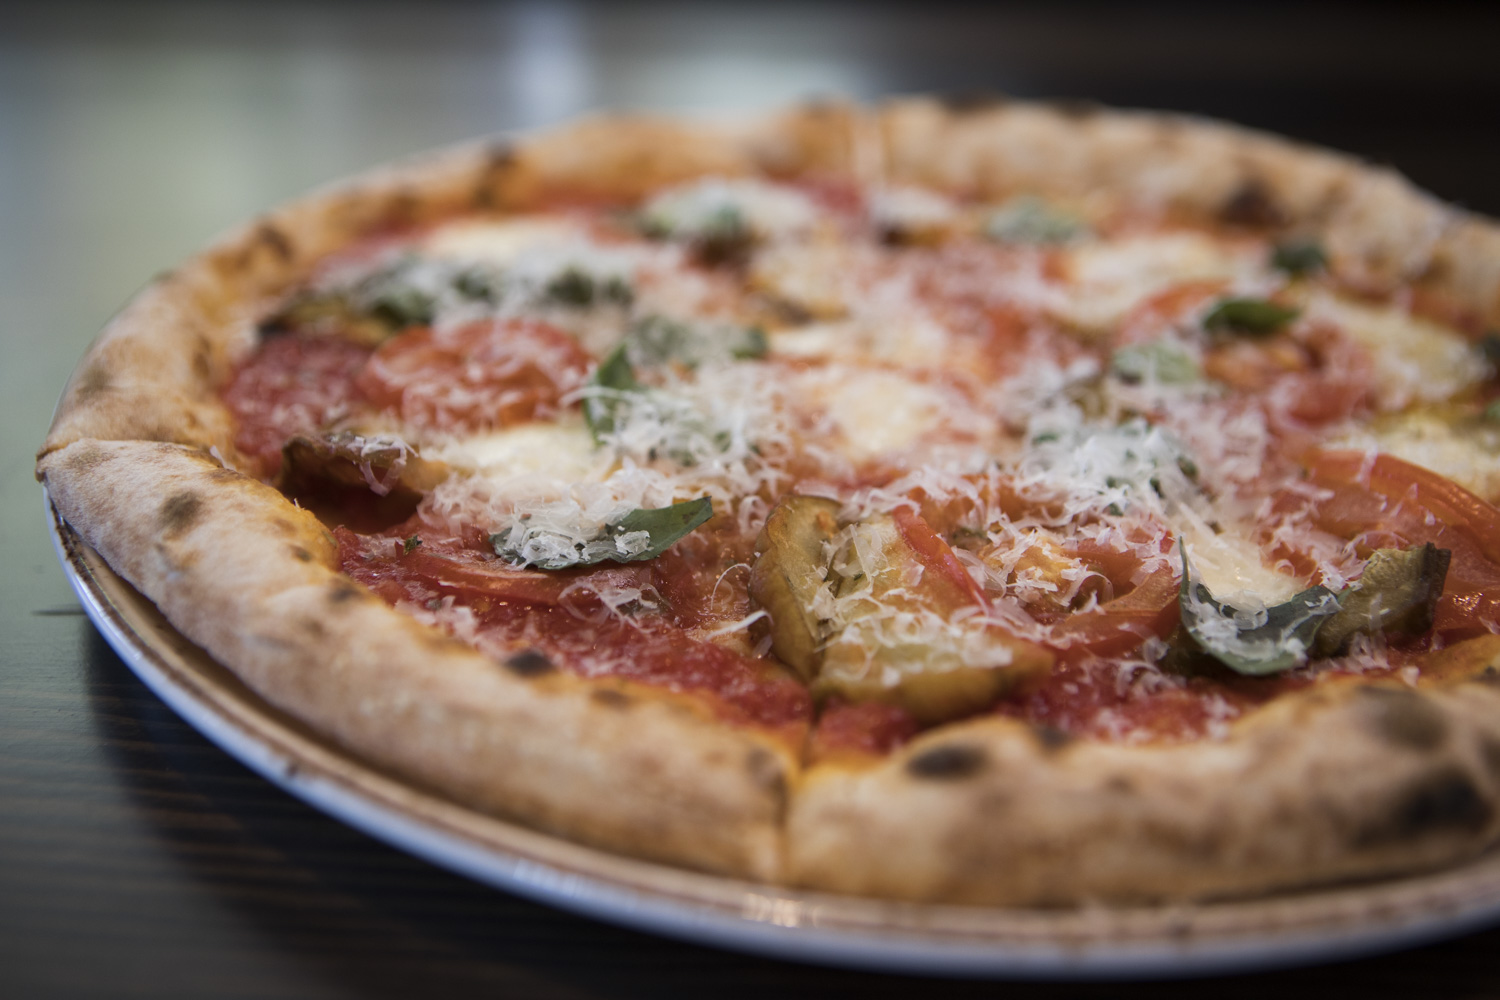 The Parmigiana pizza with fresh mozzarella, eggplant, tomatoes, oregano, basil, Parmigiano-Reggiano.